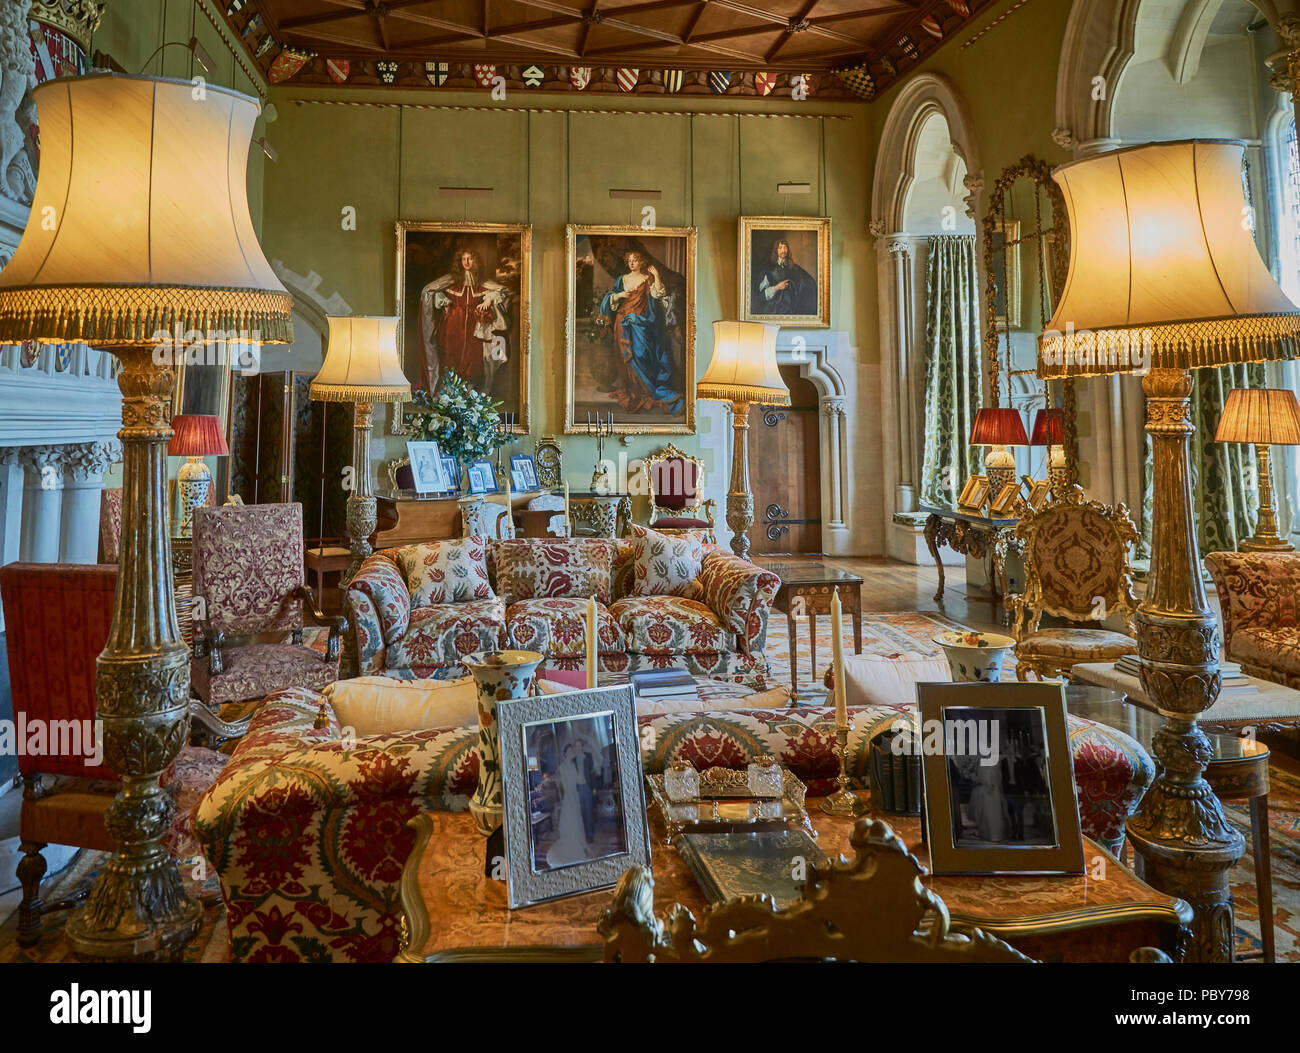 The Opulent Interior Of An English Country House Stock Photo Alamy